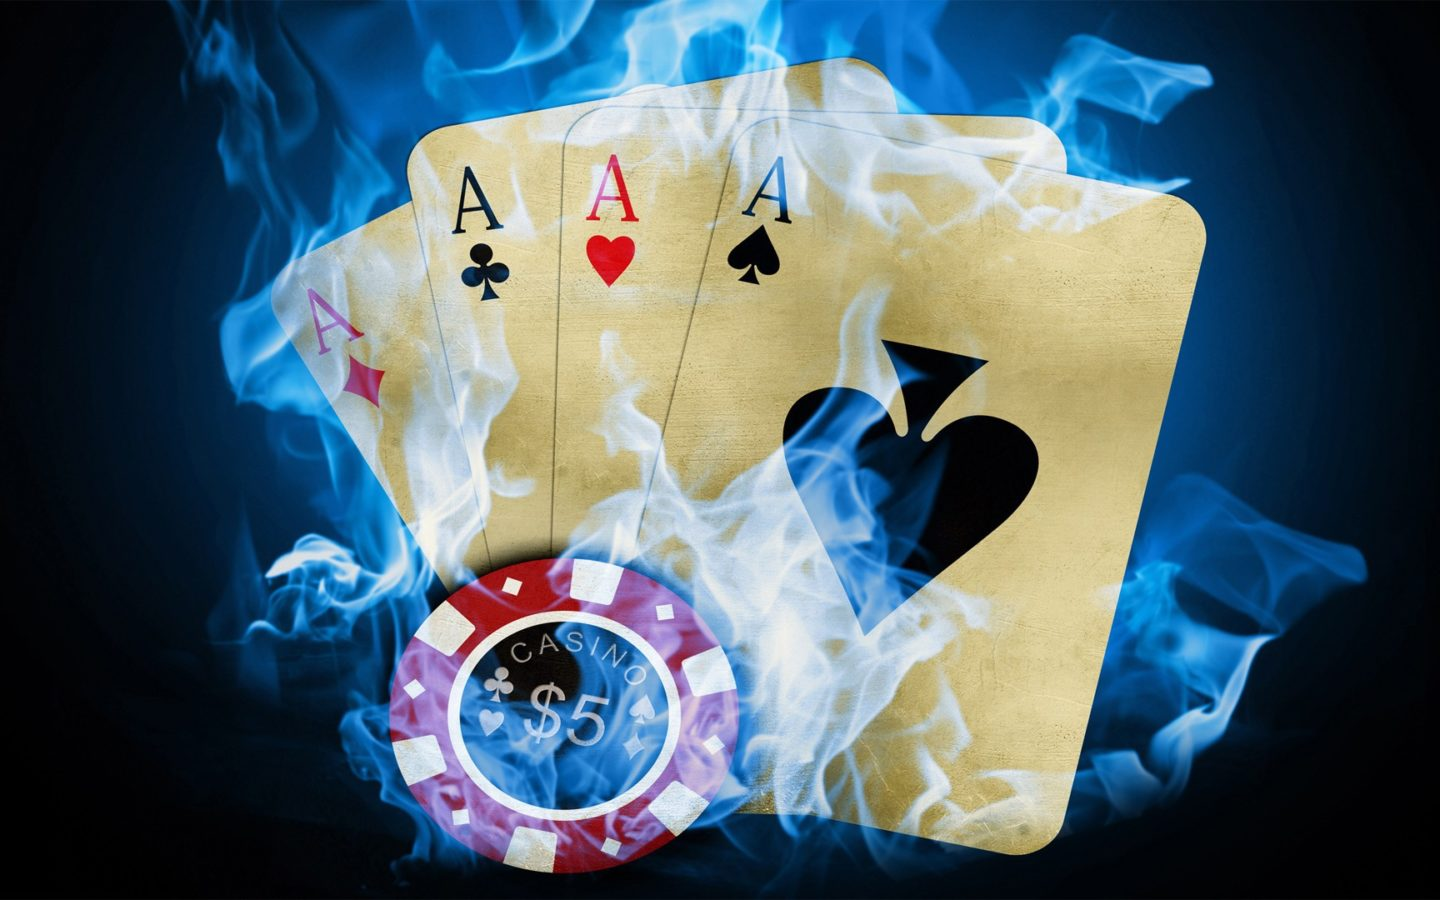 Best casino games for beginners to try